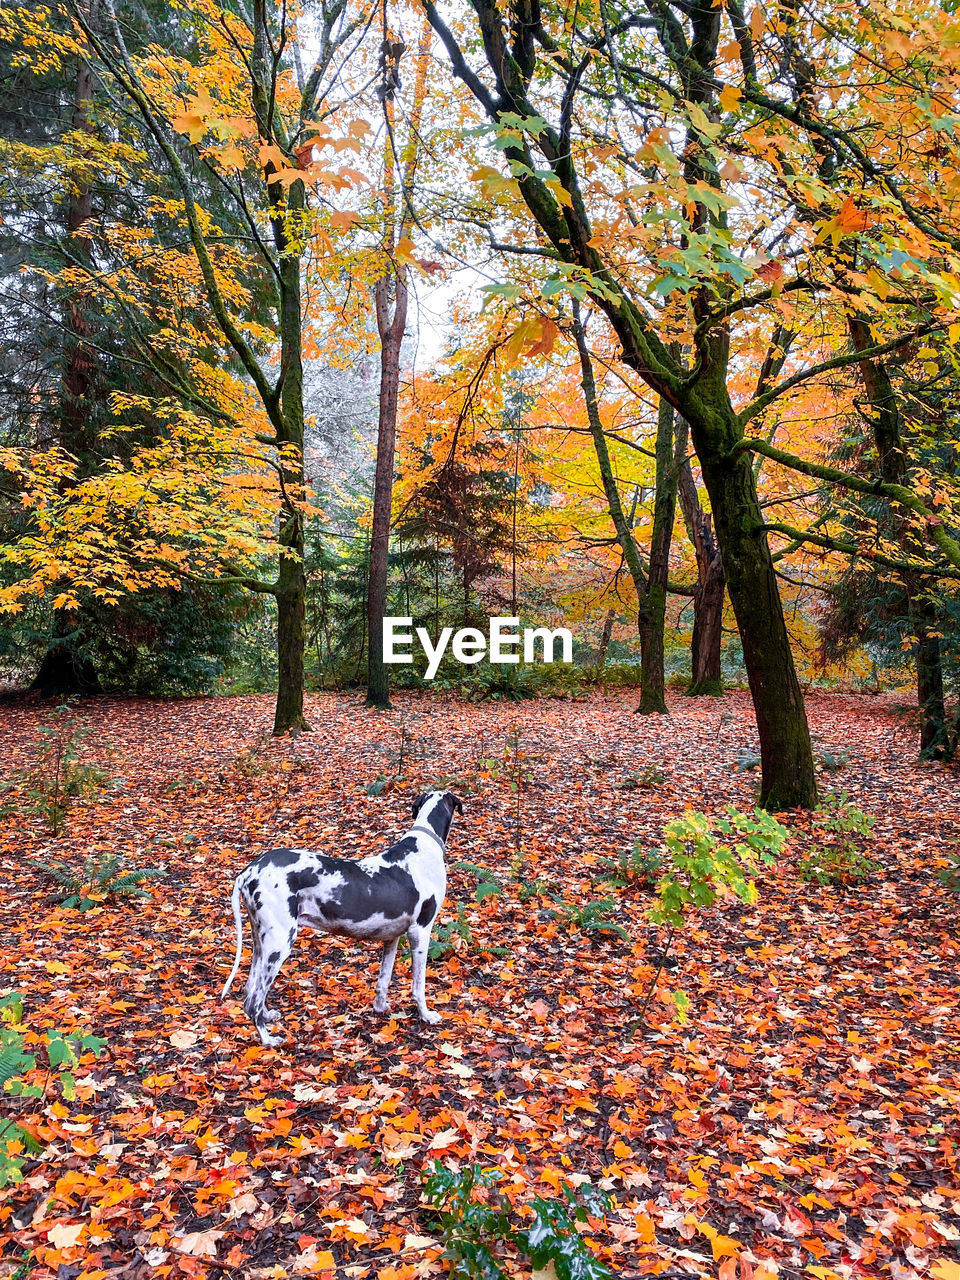 autumn, one animal, domestic animals, tree, domestic, mammal, pets, canine, dog, animal, change, animal themes, vertebrate, plant, leaf, plant part, day, nature, land, beauty in nature, no people, outdoors, leaves, purebred dog, autumn collection